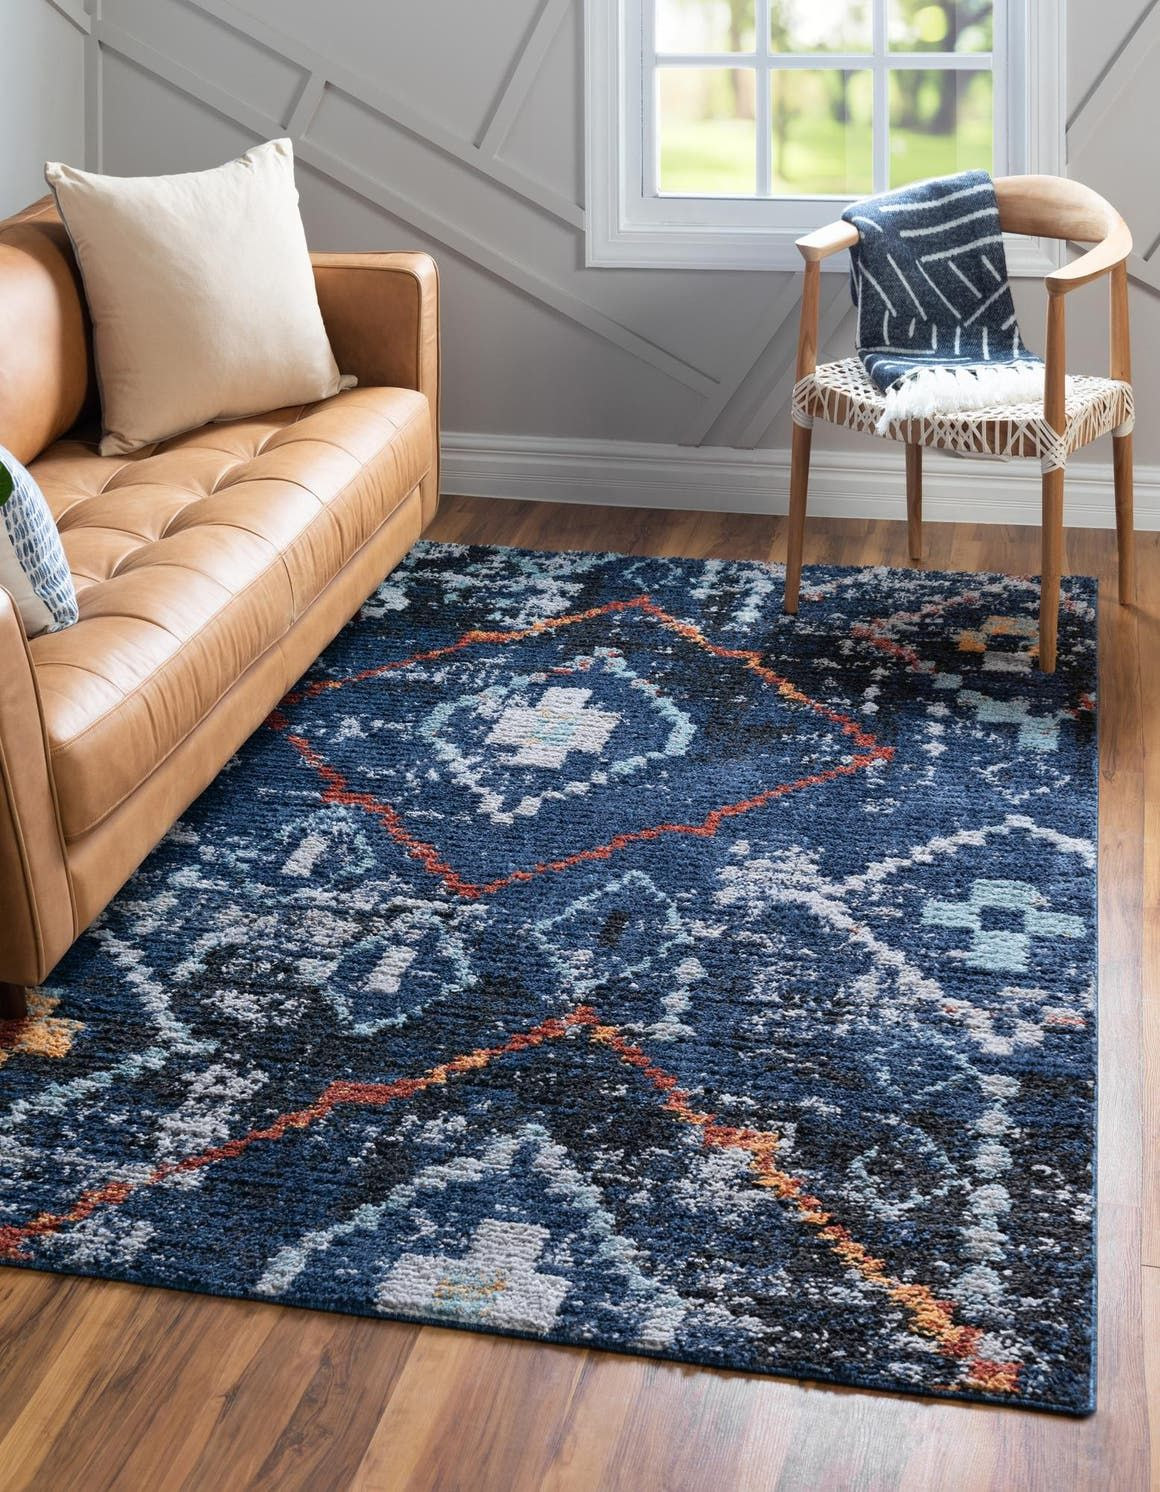 Morocco Navy Blue Vintage 9x12 Large Area Rug In 2020 Navy Blue Rug Blue Rug Living Light Blue Living Room